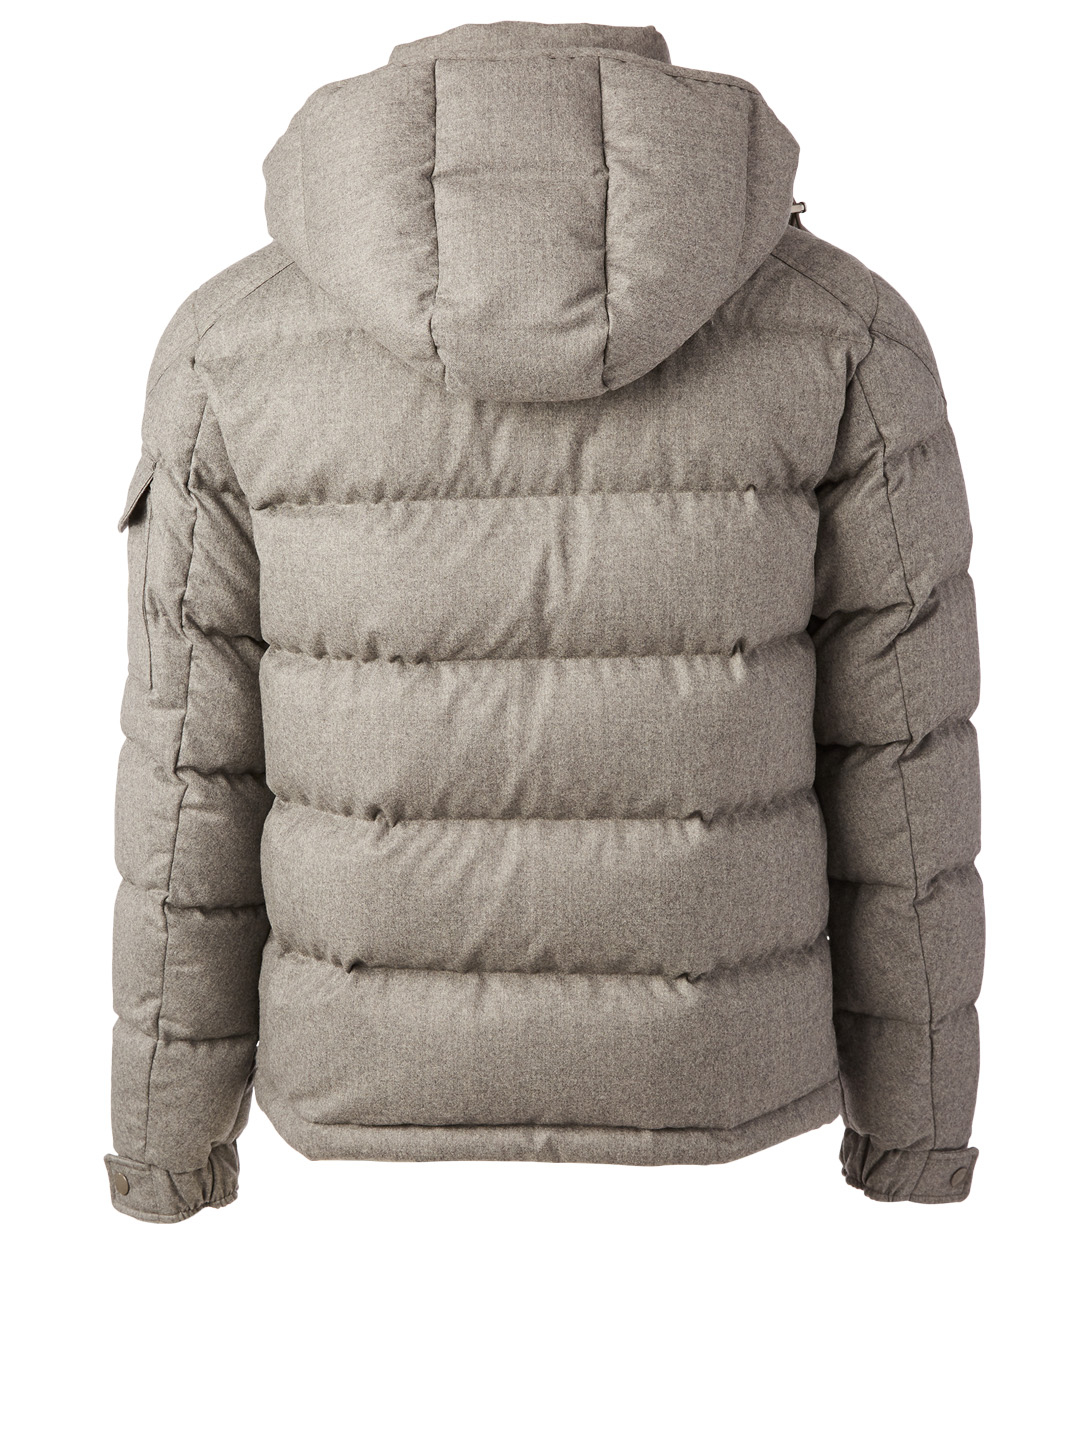 MONCLER Montgenevre Flannel Down Puffer Jacket Men's Grey